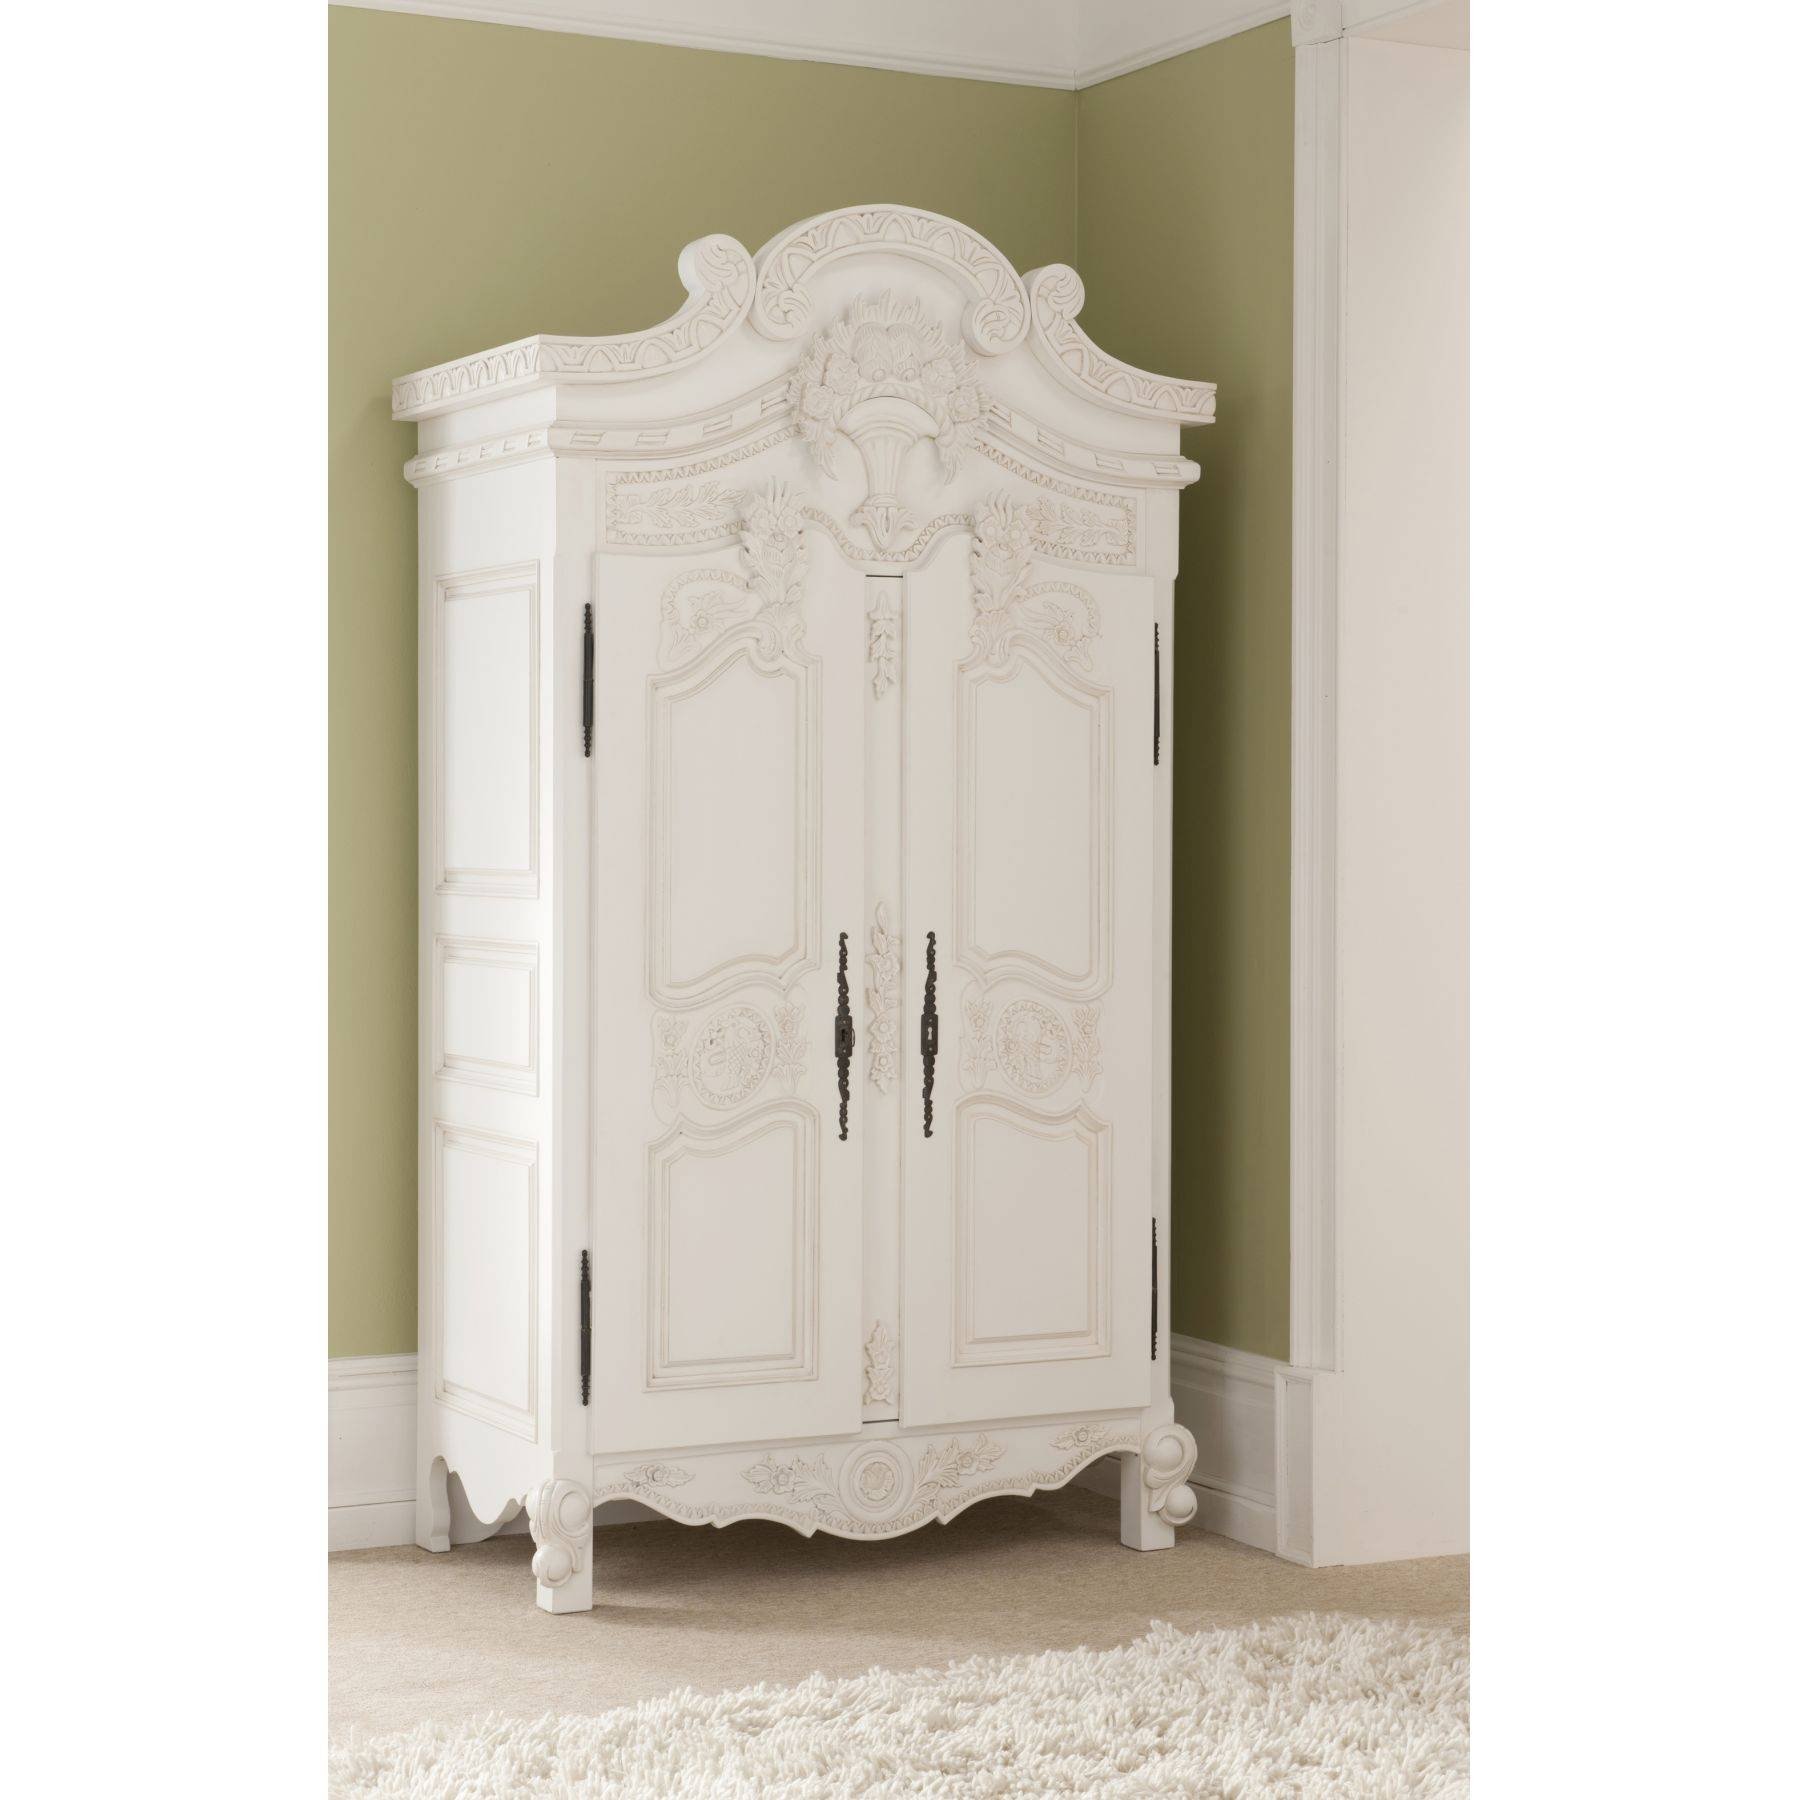 Rococo Antique French Wardrobe A Stunning Addition To Our Shabby regarding White Wardrobes French Style (Image 12 of 15)